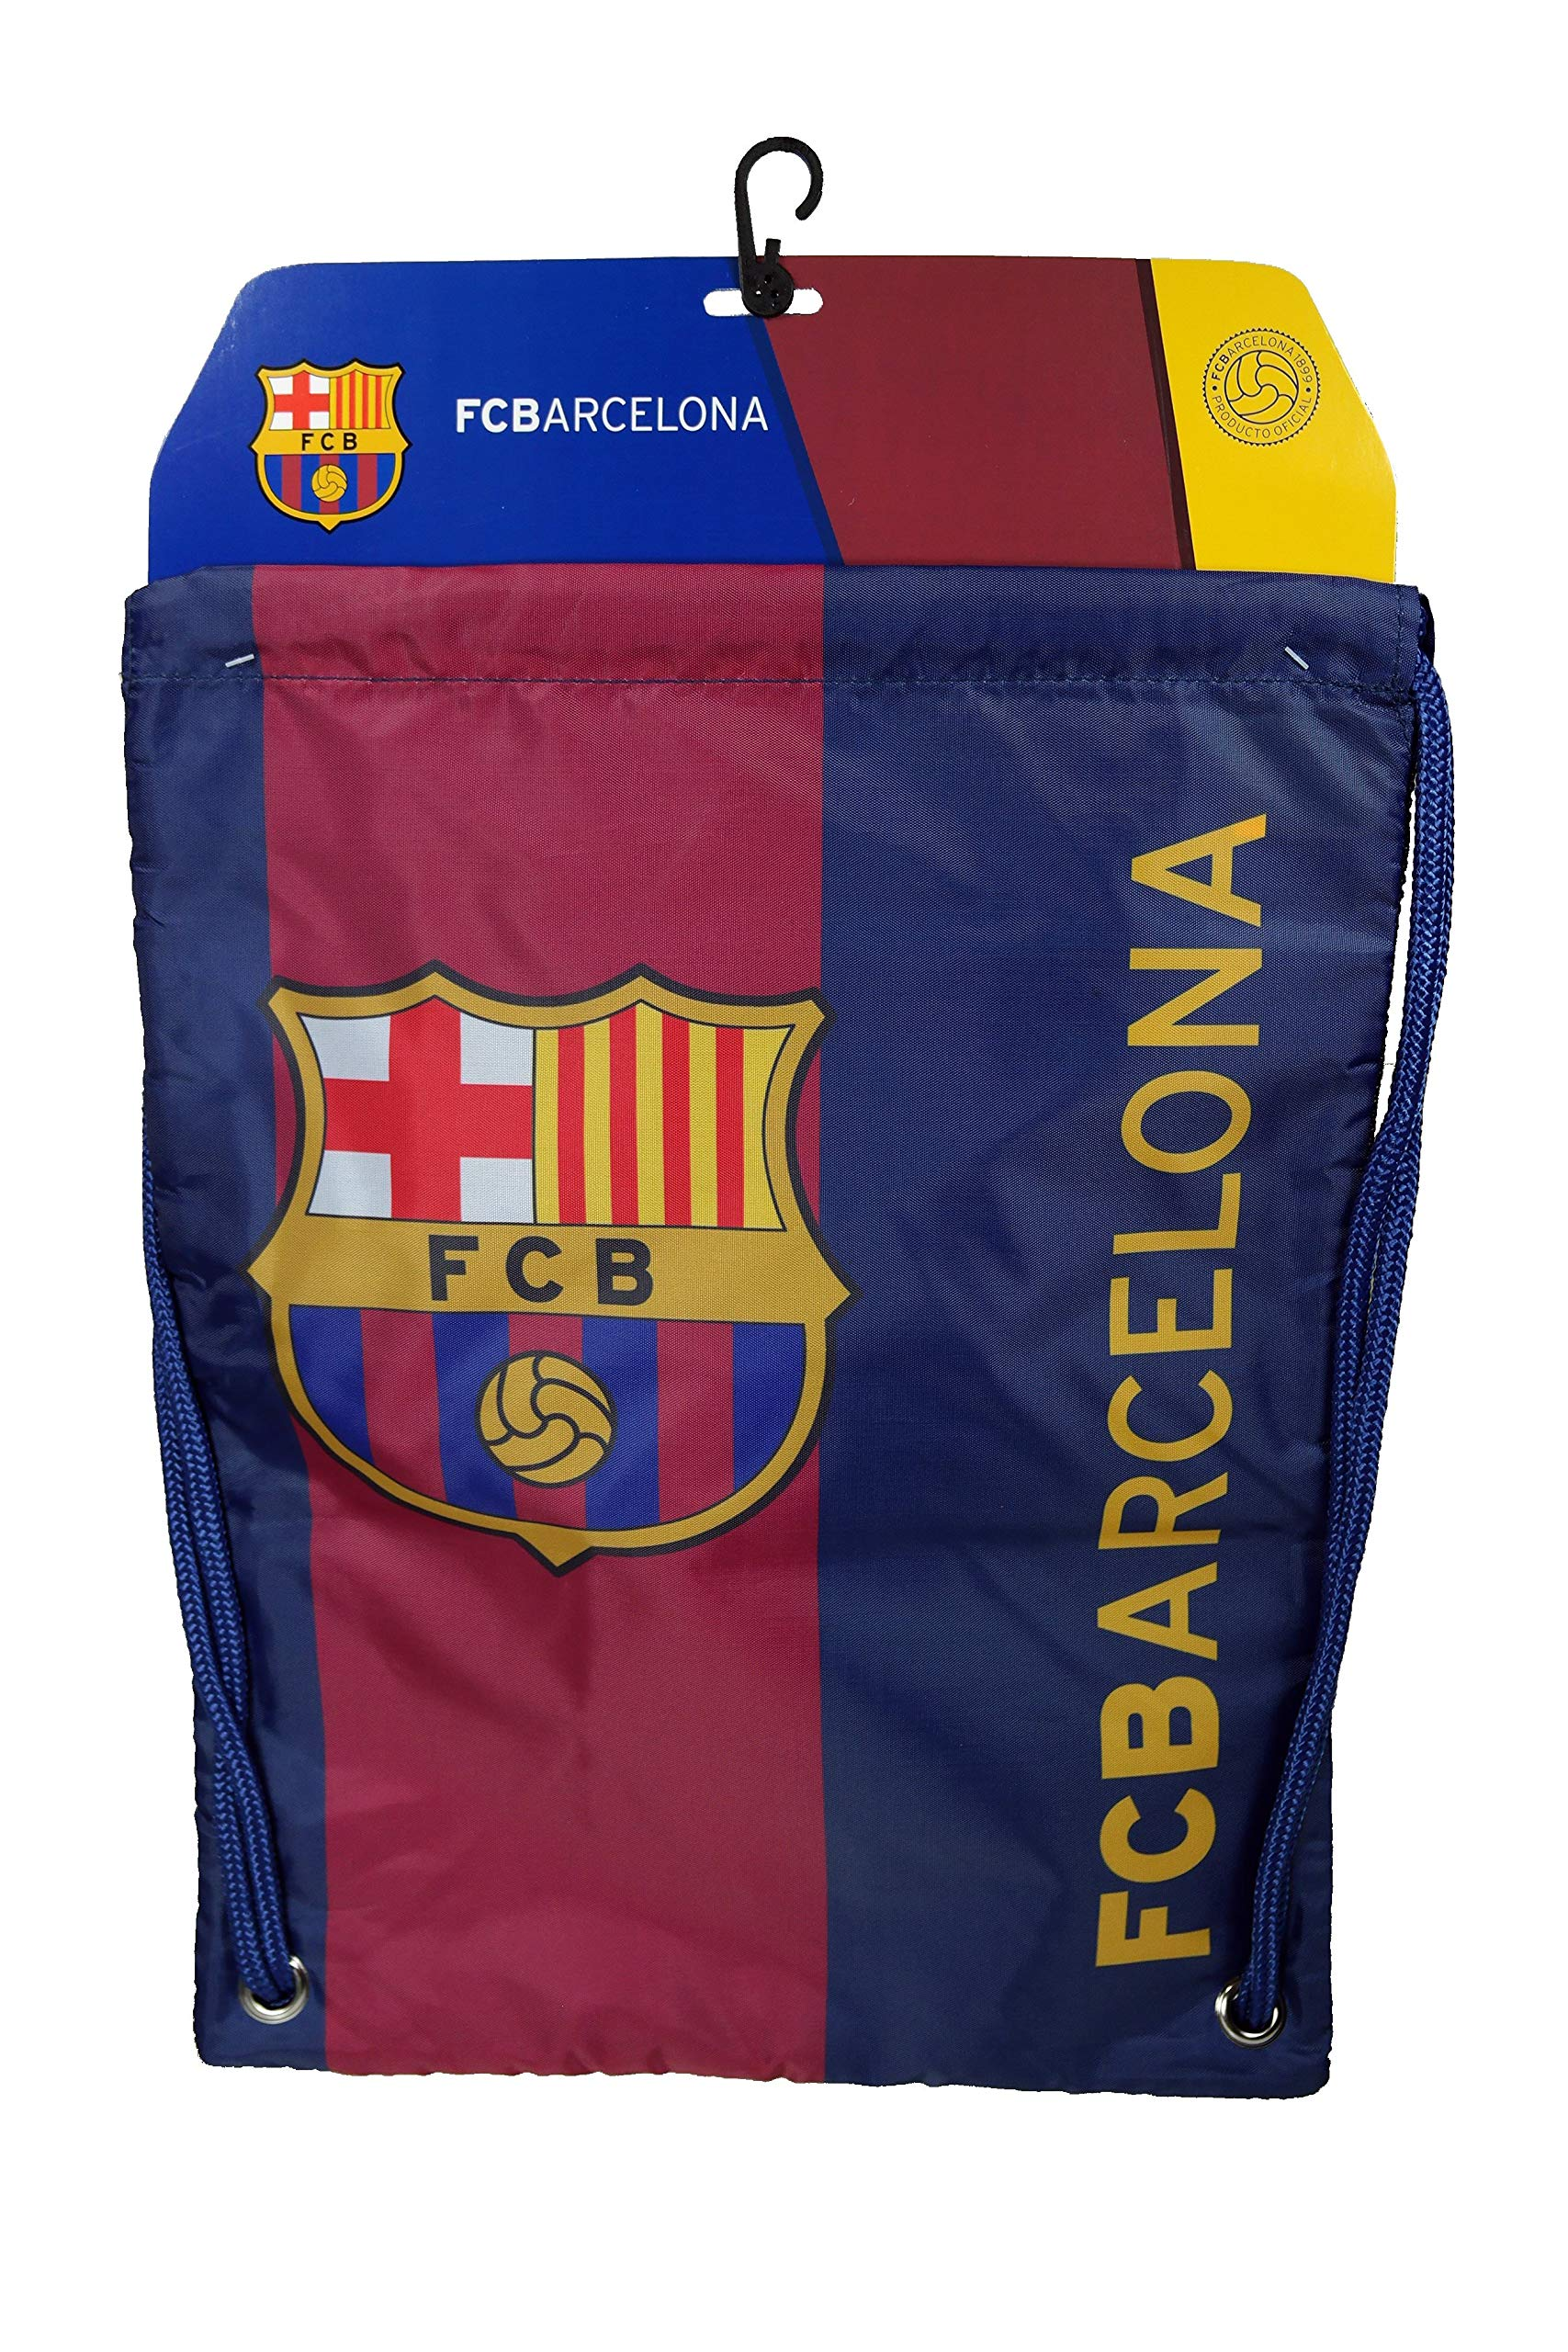 Fc Barcelona Authentic Official Licensed Soccer Drawstring Cinch Sack Bag 01-2